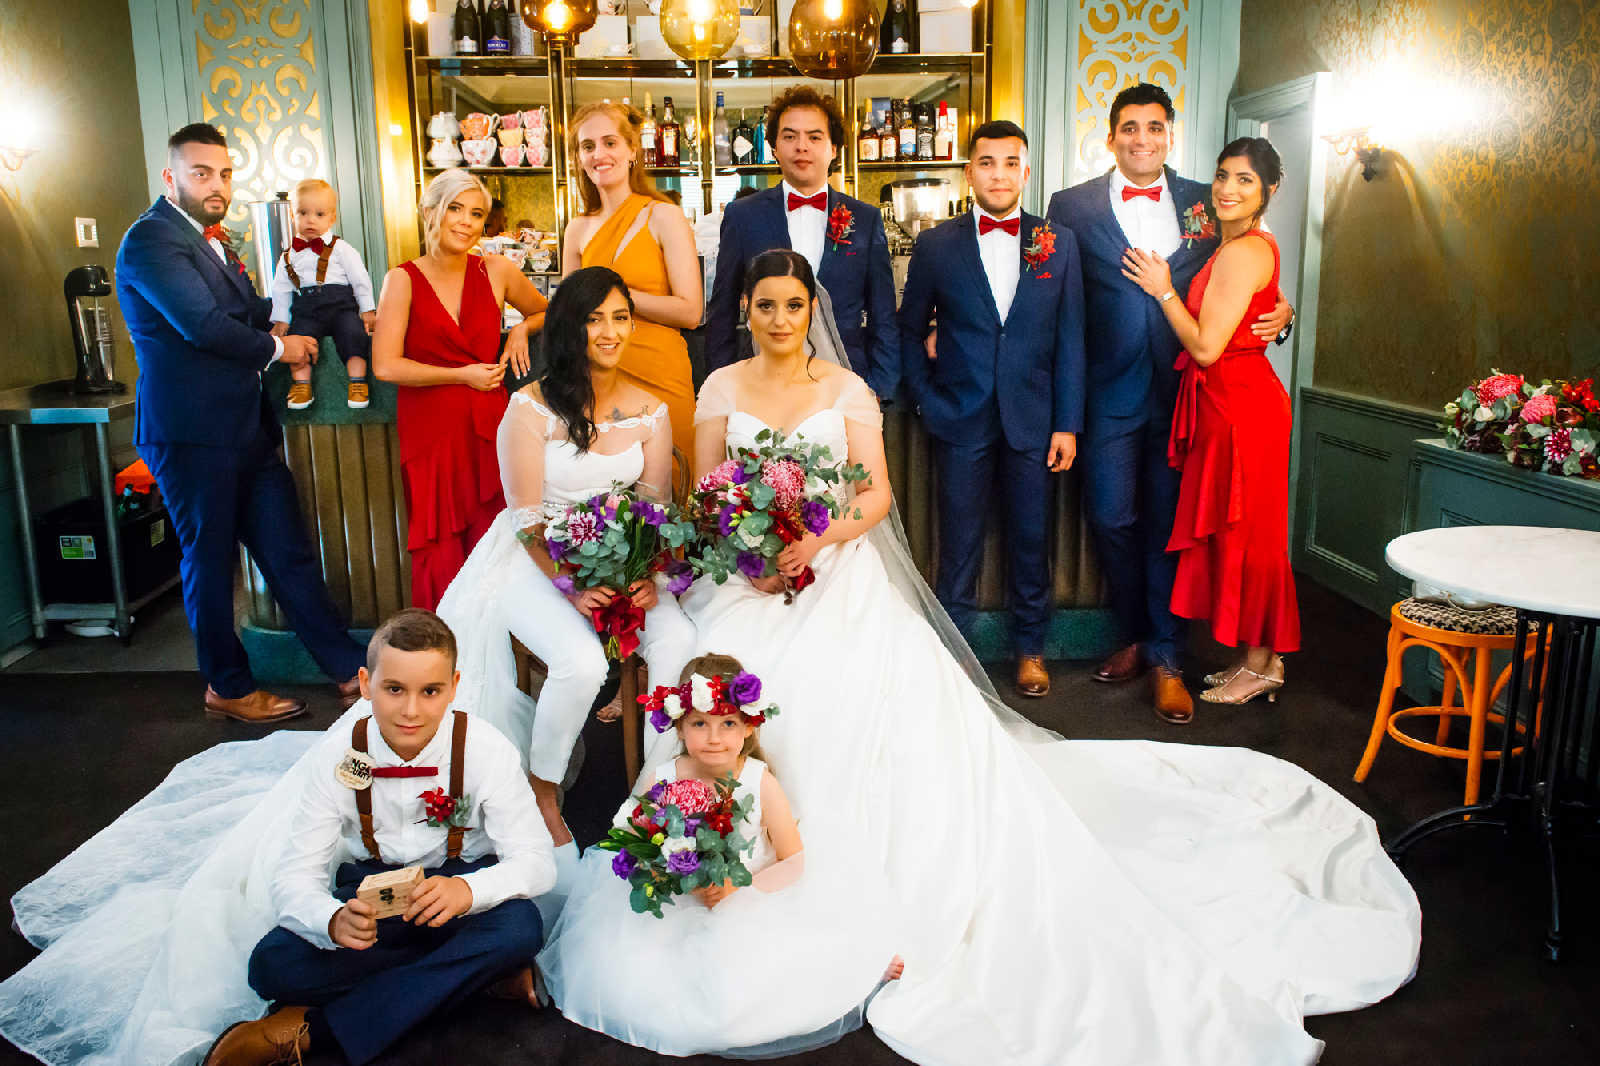 2 brides and their bridal party